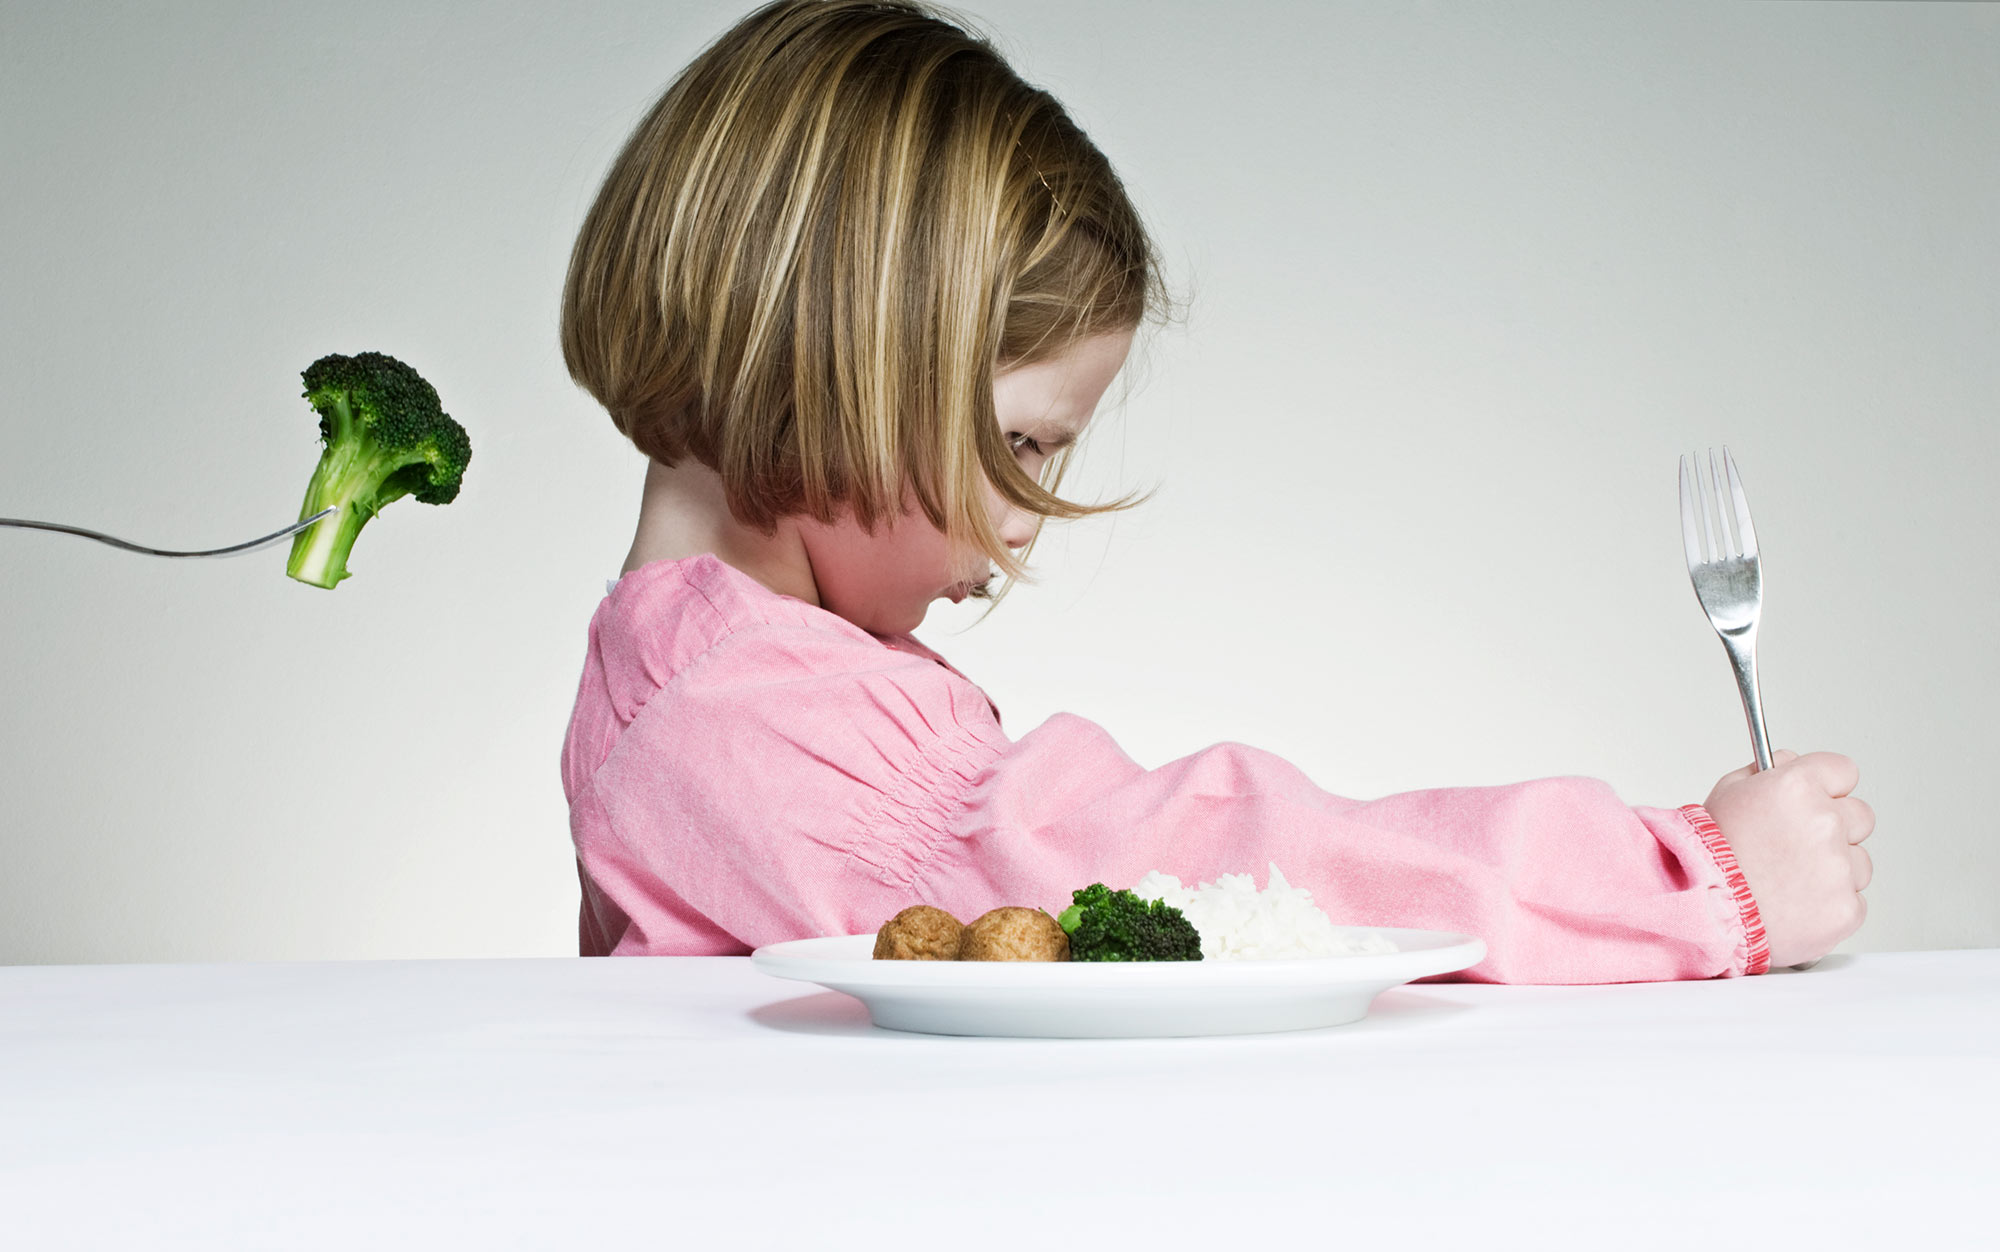 Getting more veggies into kids!